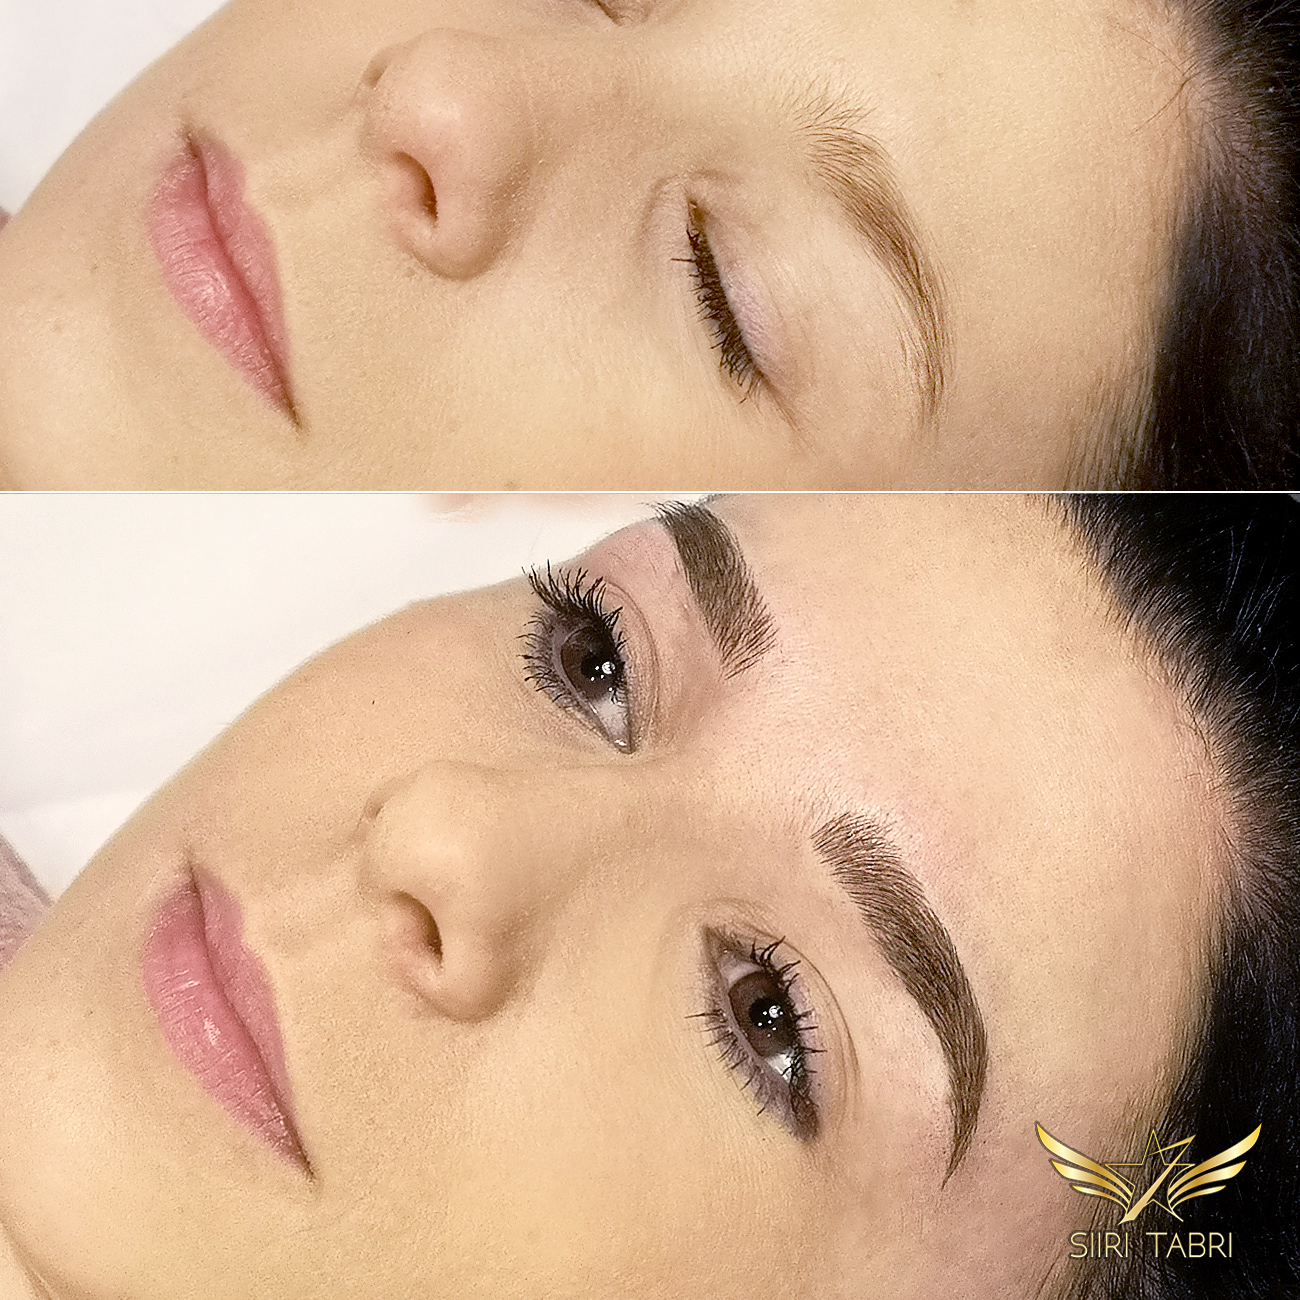 Light microblading. Reshaped and made stronger with Light microblading. Extremely natural results.